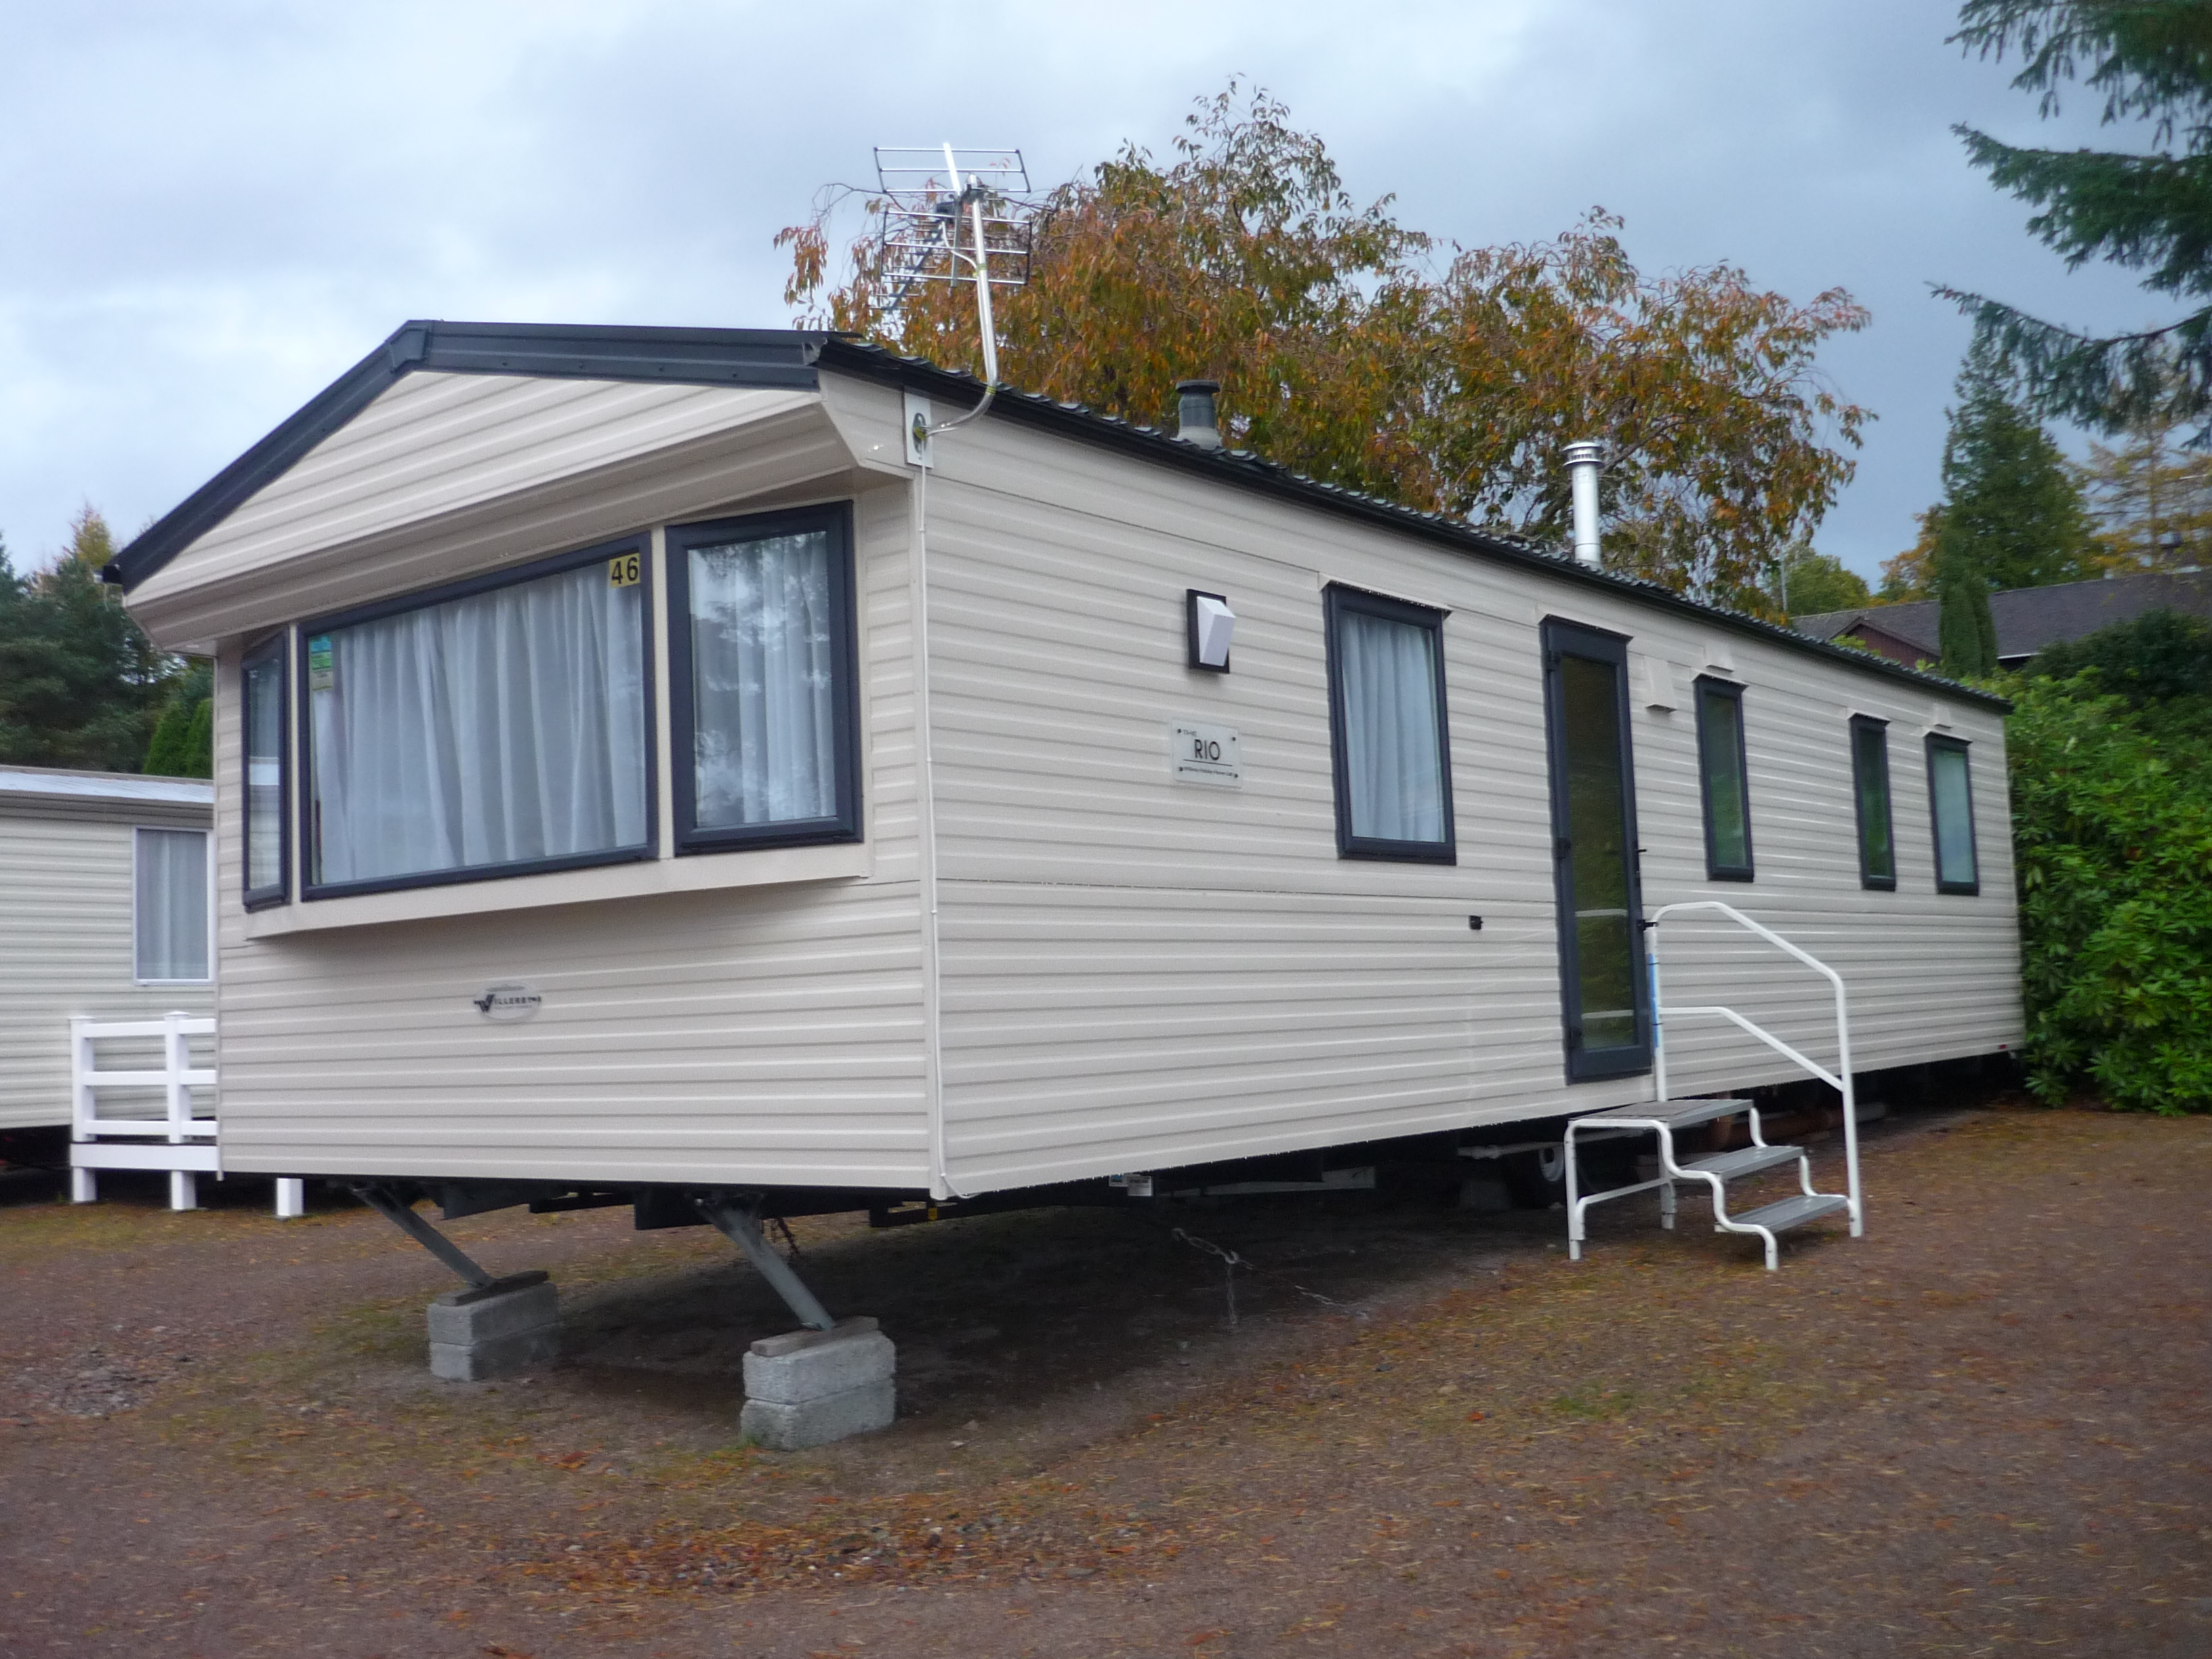 datei mobile home jpg wikipedia